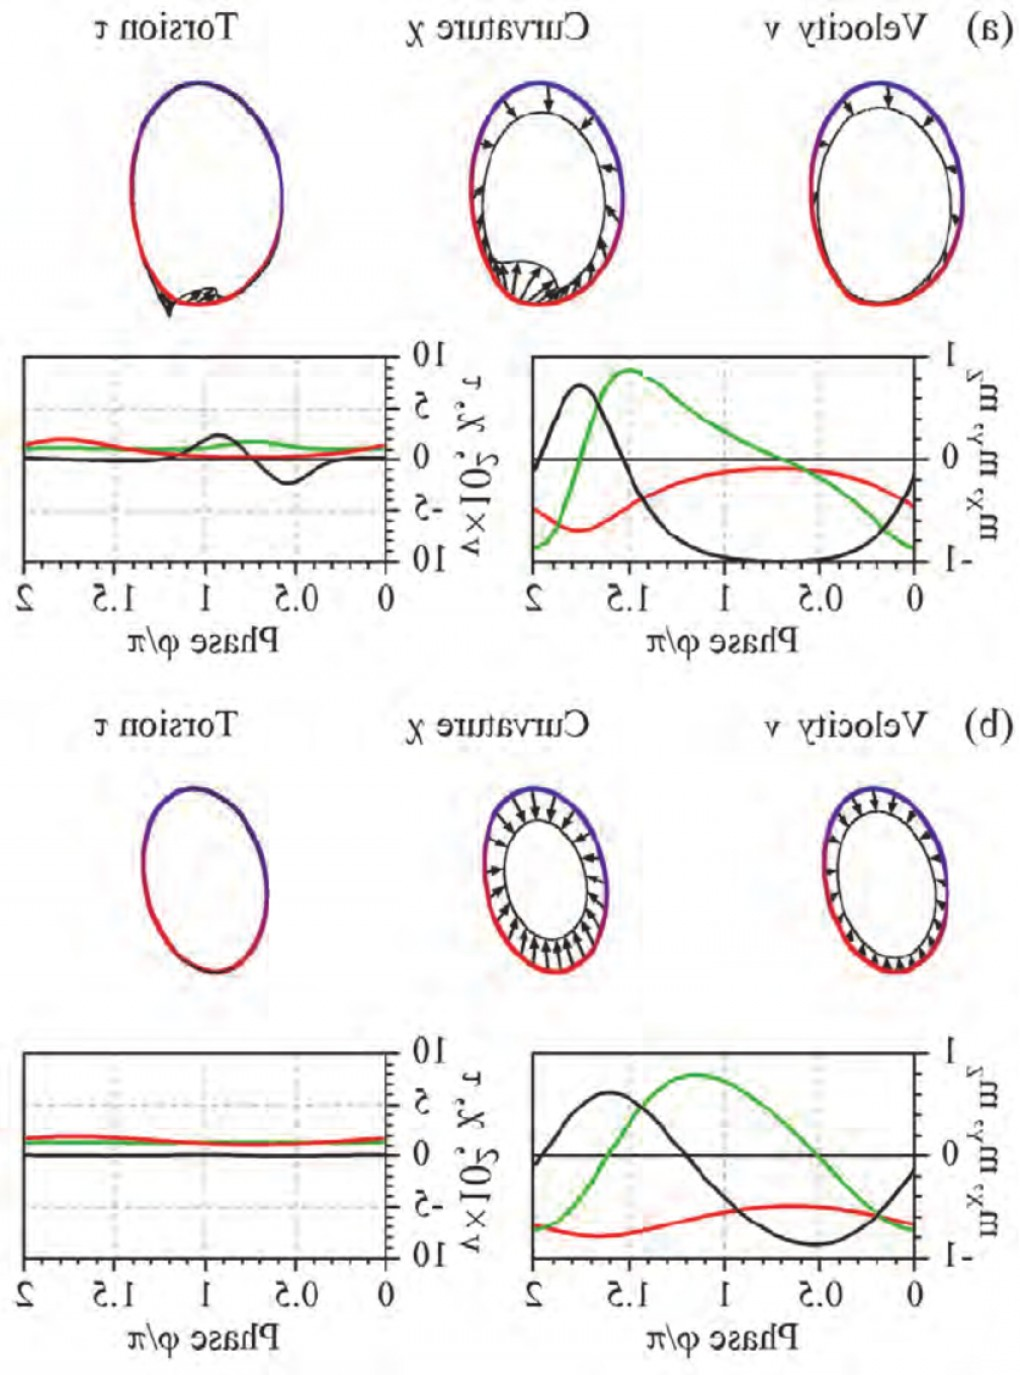 Denoting Vectors In Writing: Velocity Curvature And Torsion Of Out Of Plane Phase Portrait Calculated For A H Fig